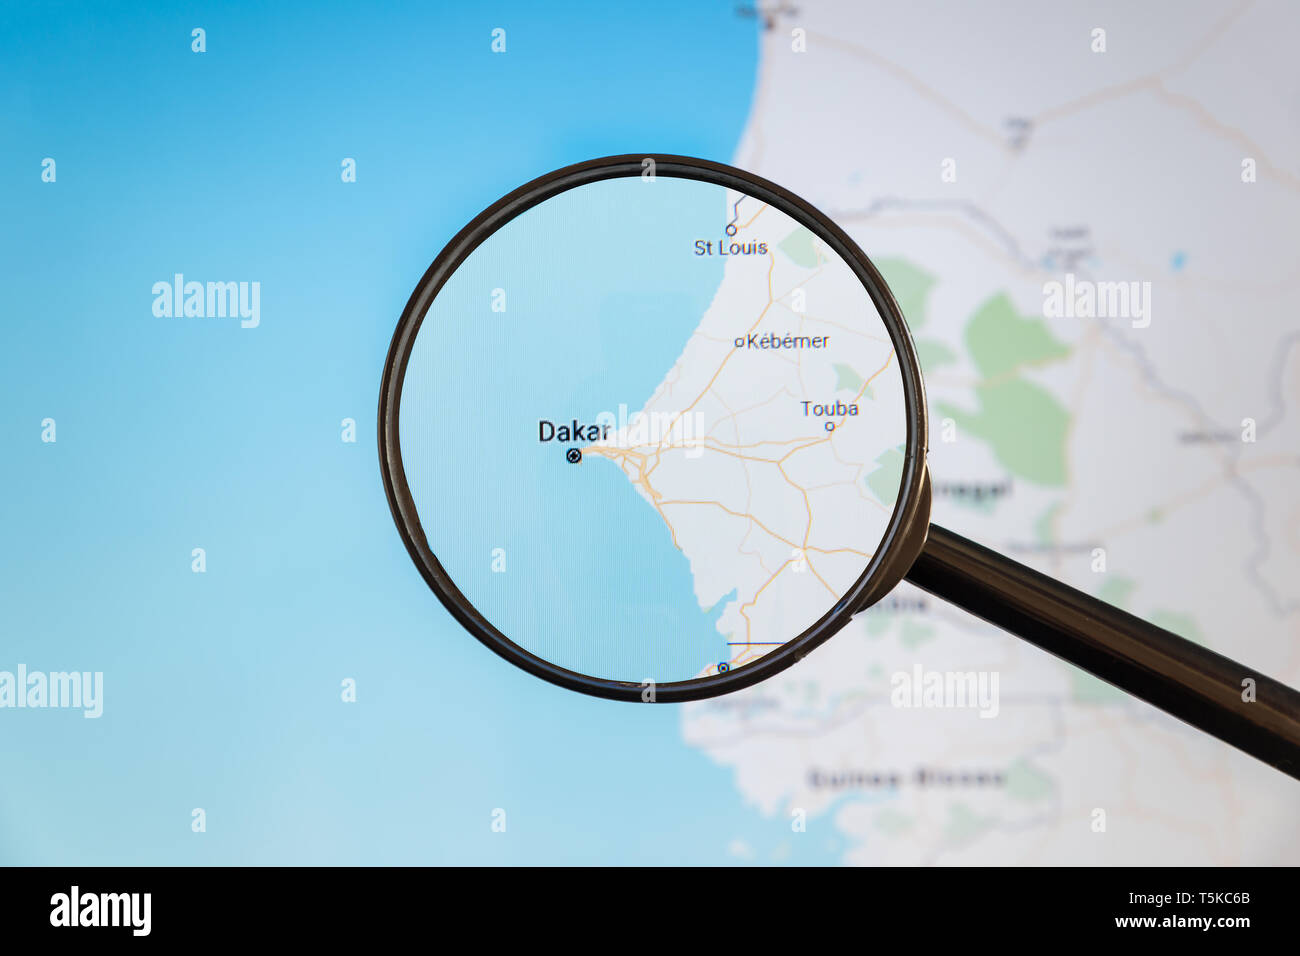 Dakar, Senegal. Political map. City visualization illustrative concept on display screen through magnifying glass. Stock Photo